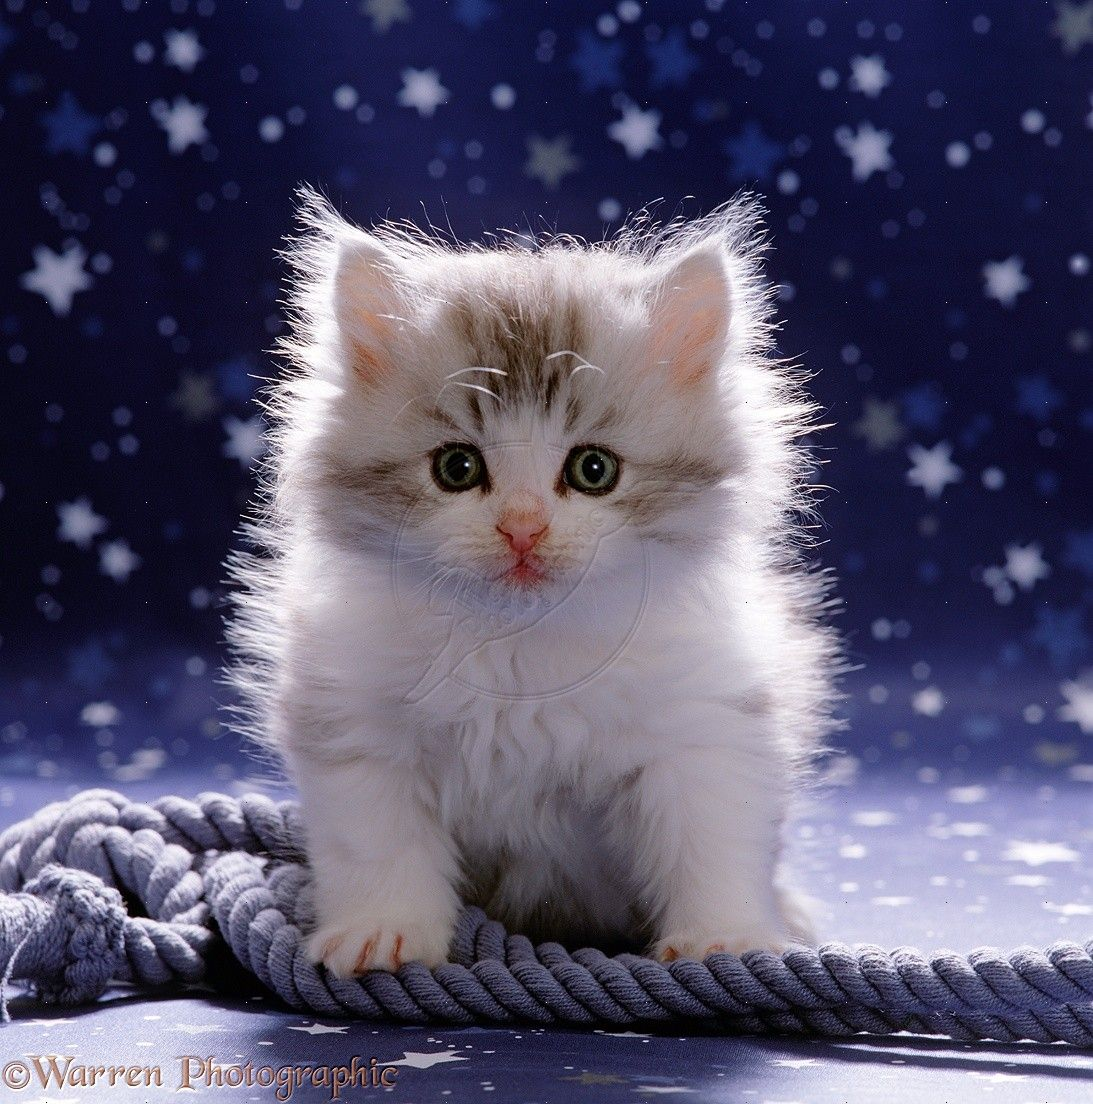 Miao Miao Miao 44 Super Cute White Kitten enjoy